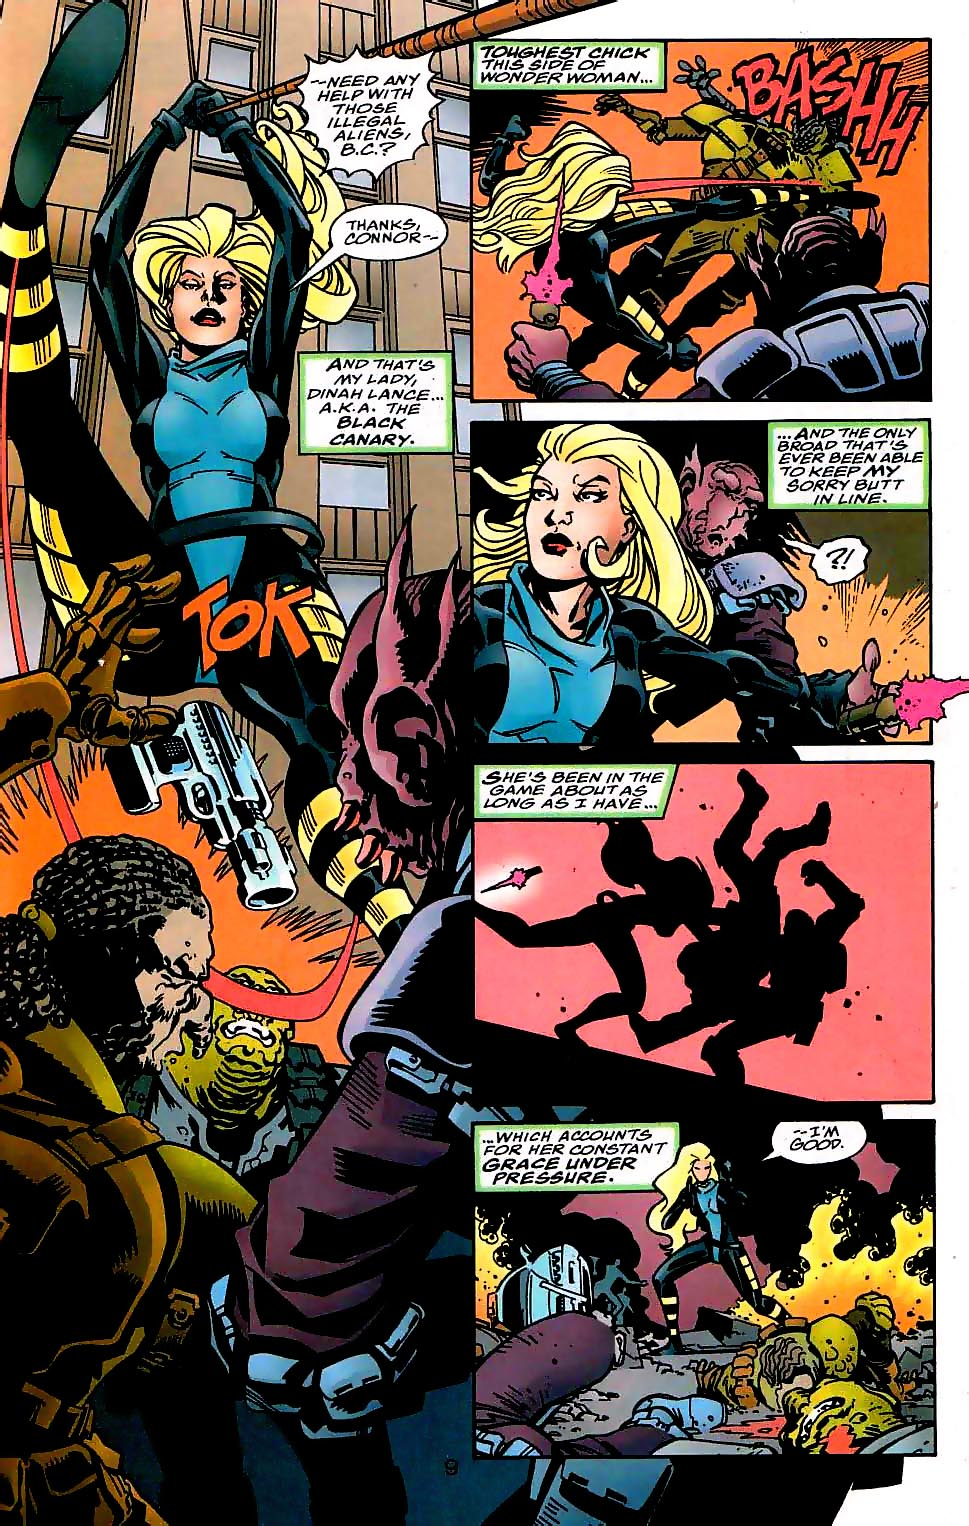 green arrow v2 25 (kebbin) 09BlackCanary.jpg